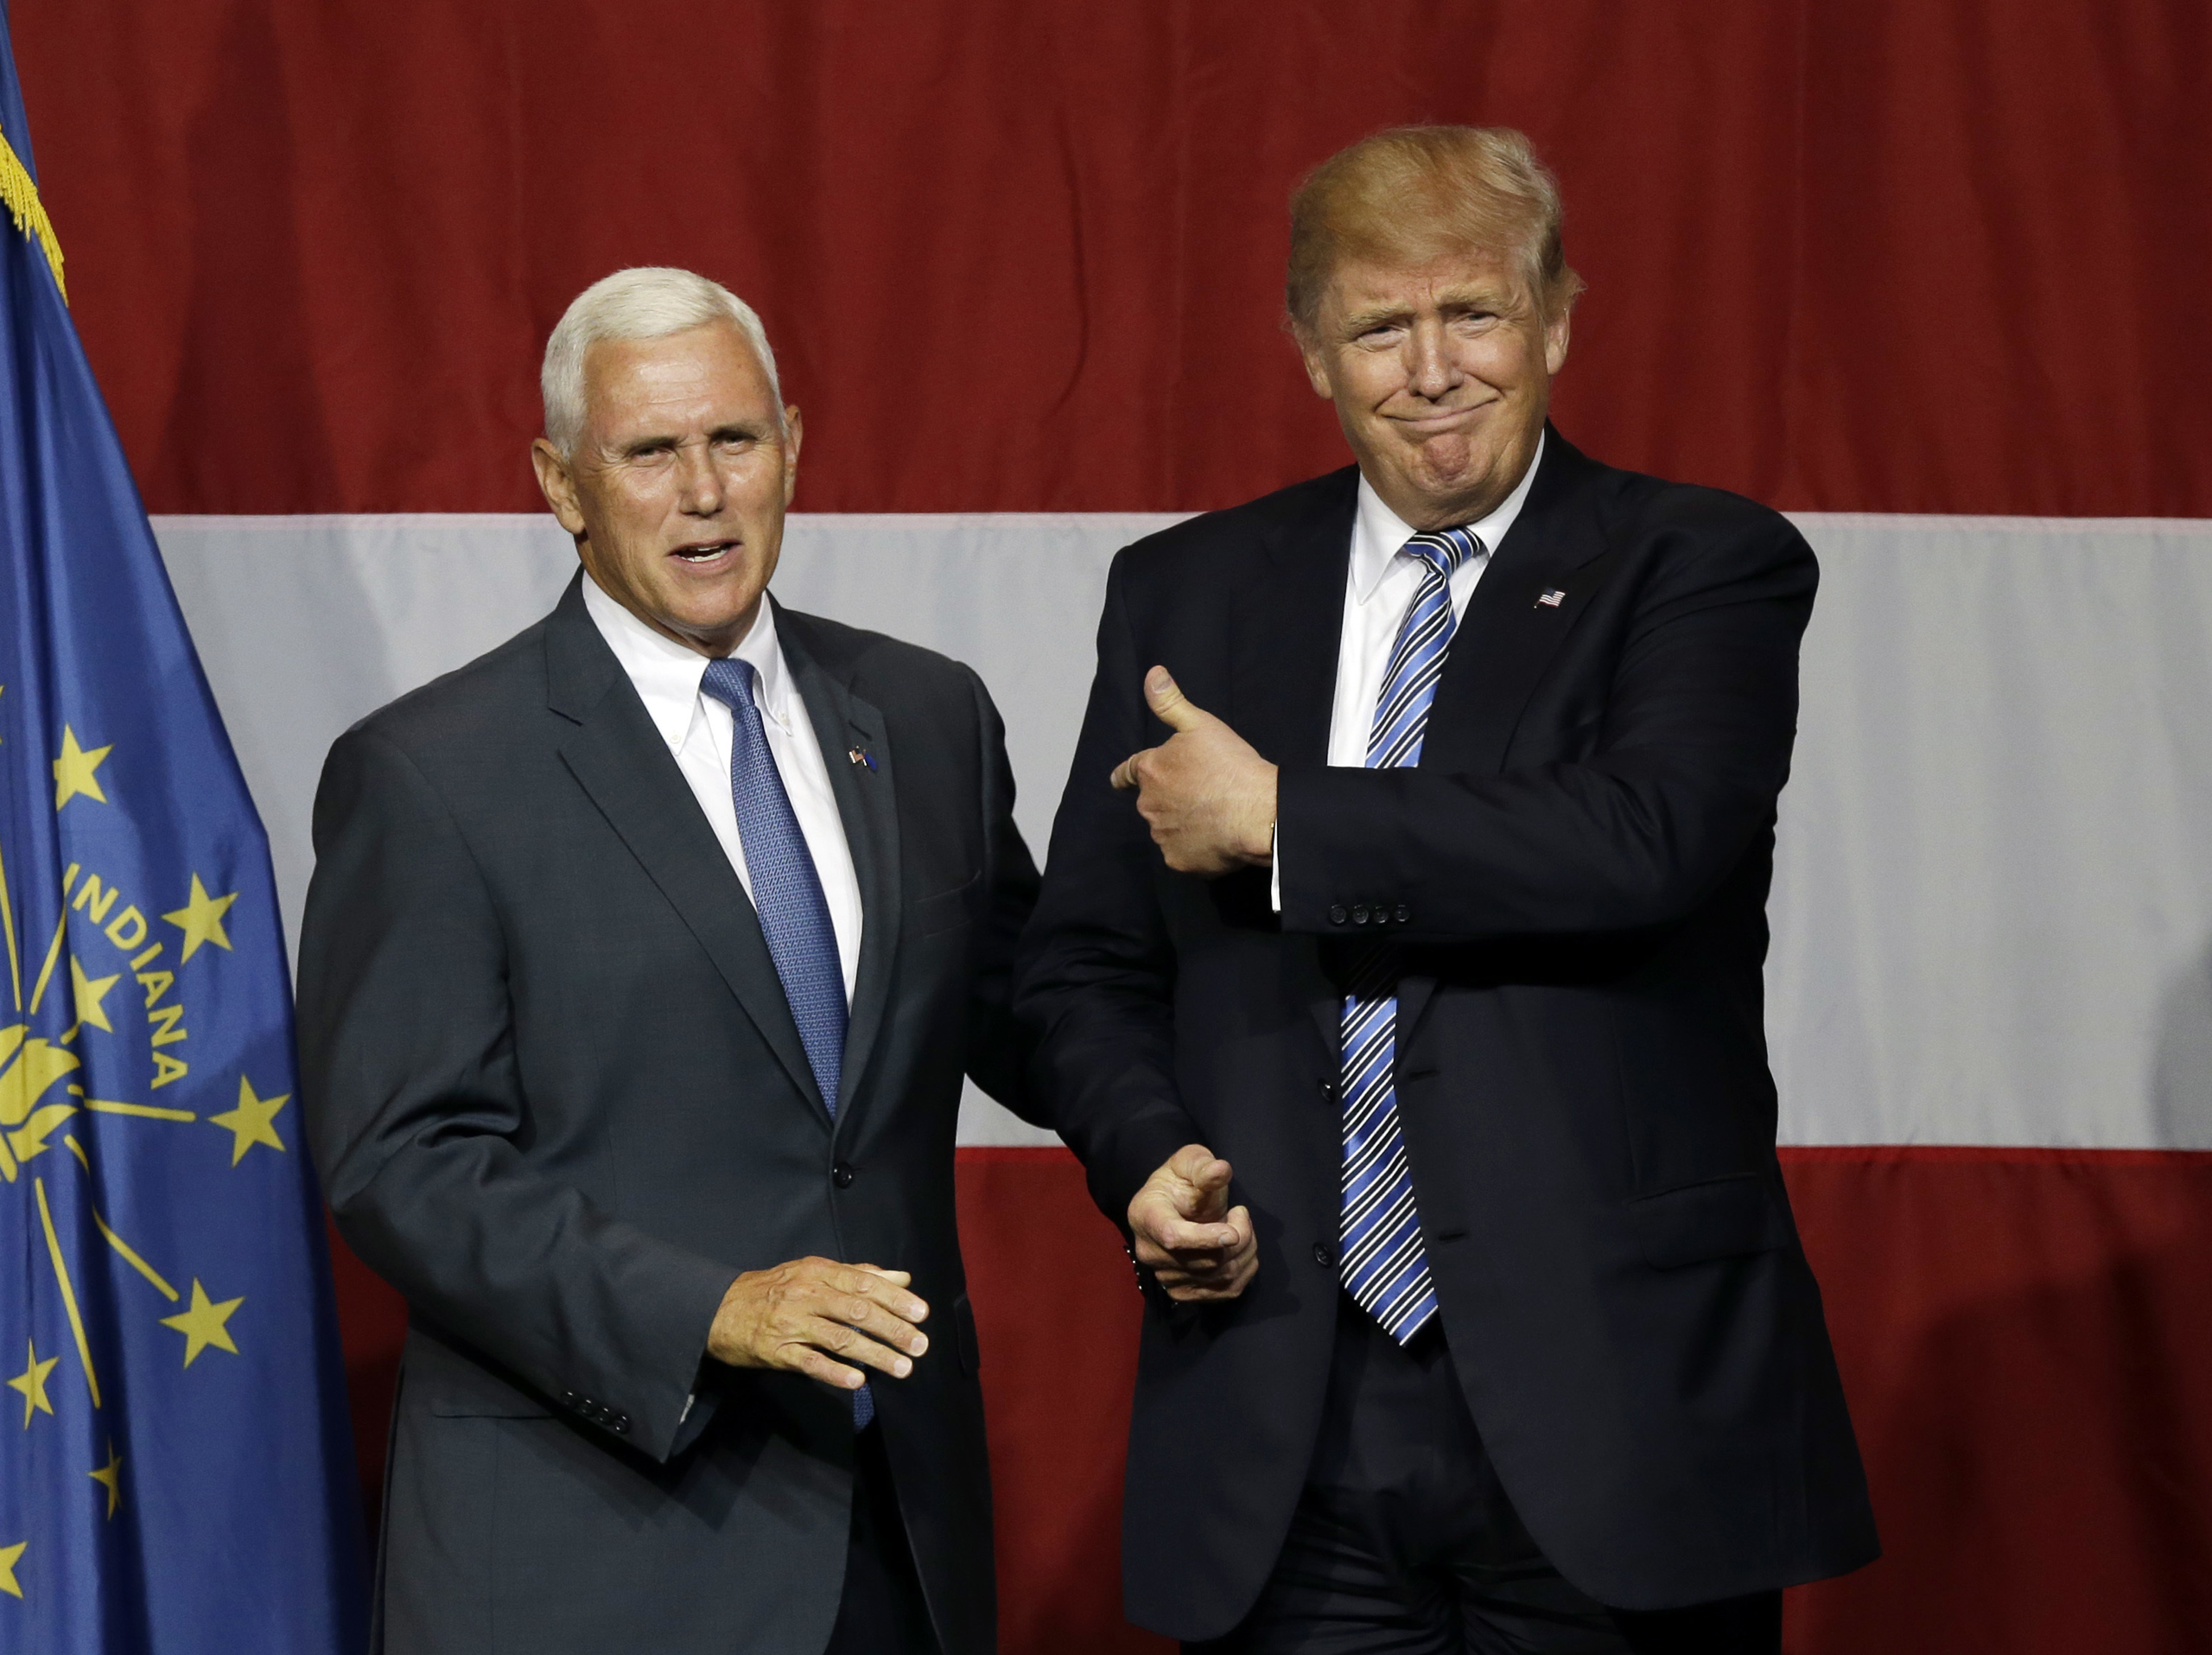 Ind. Gov. Mike Pence joins Republican presidential candidate Donald Trump at a rally in Westfield, Ind. on July 12, 2016.